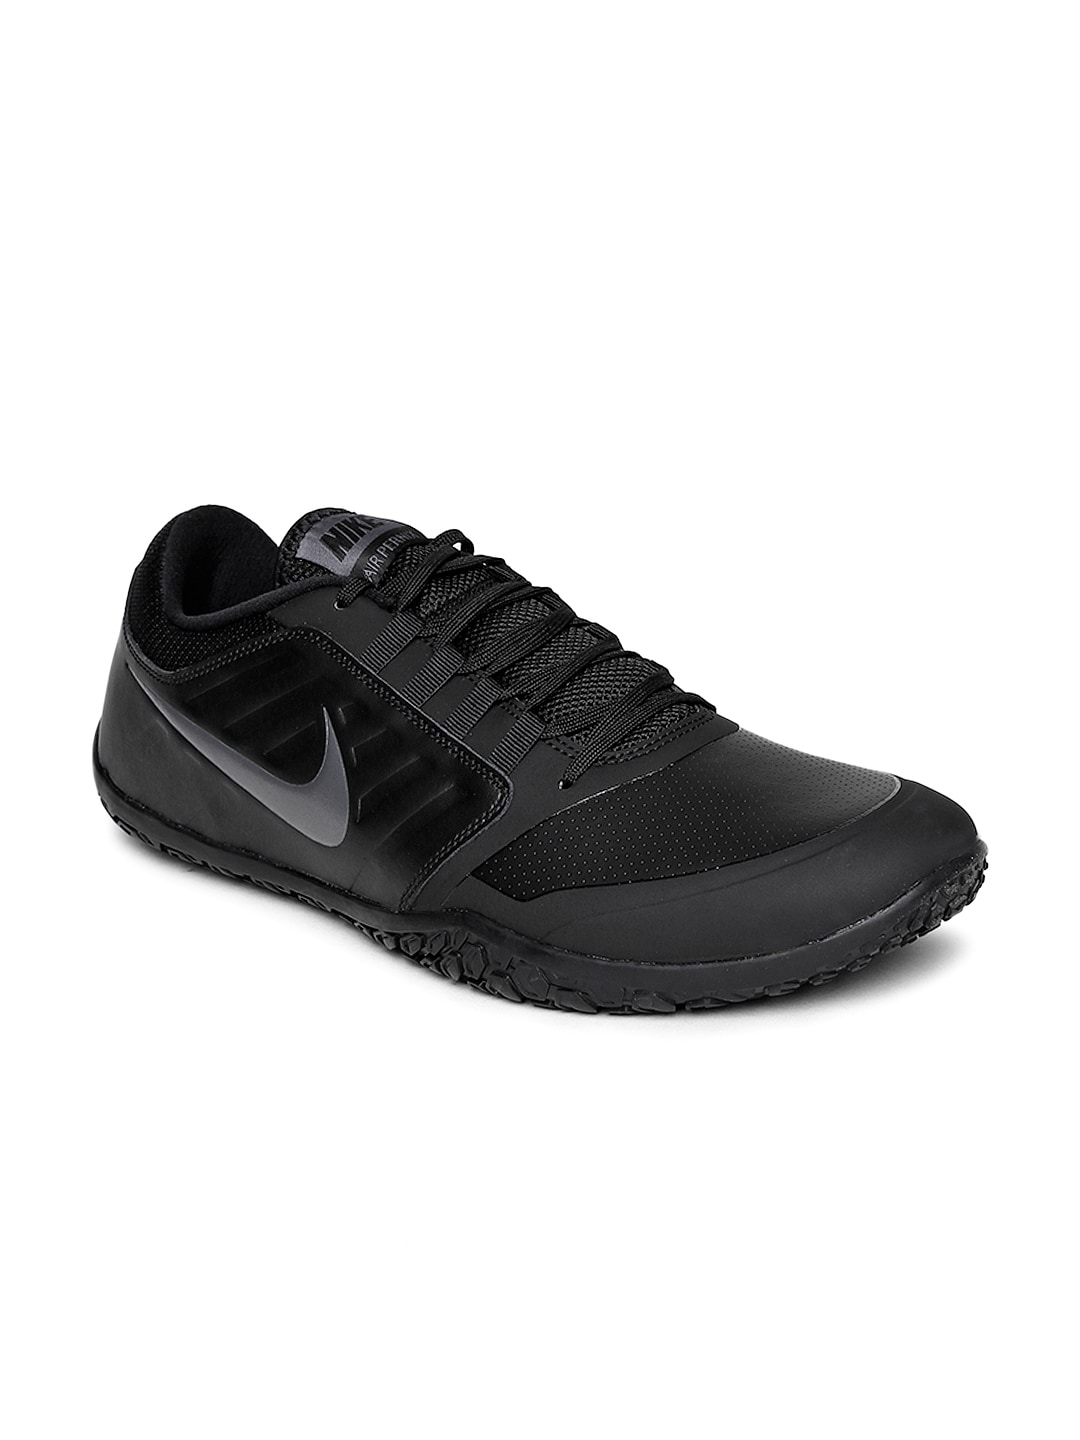 Size Shoes For Mens In India